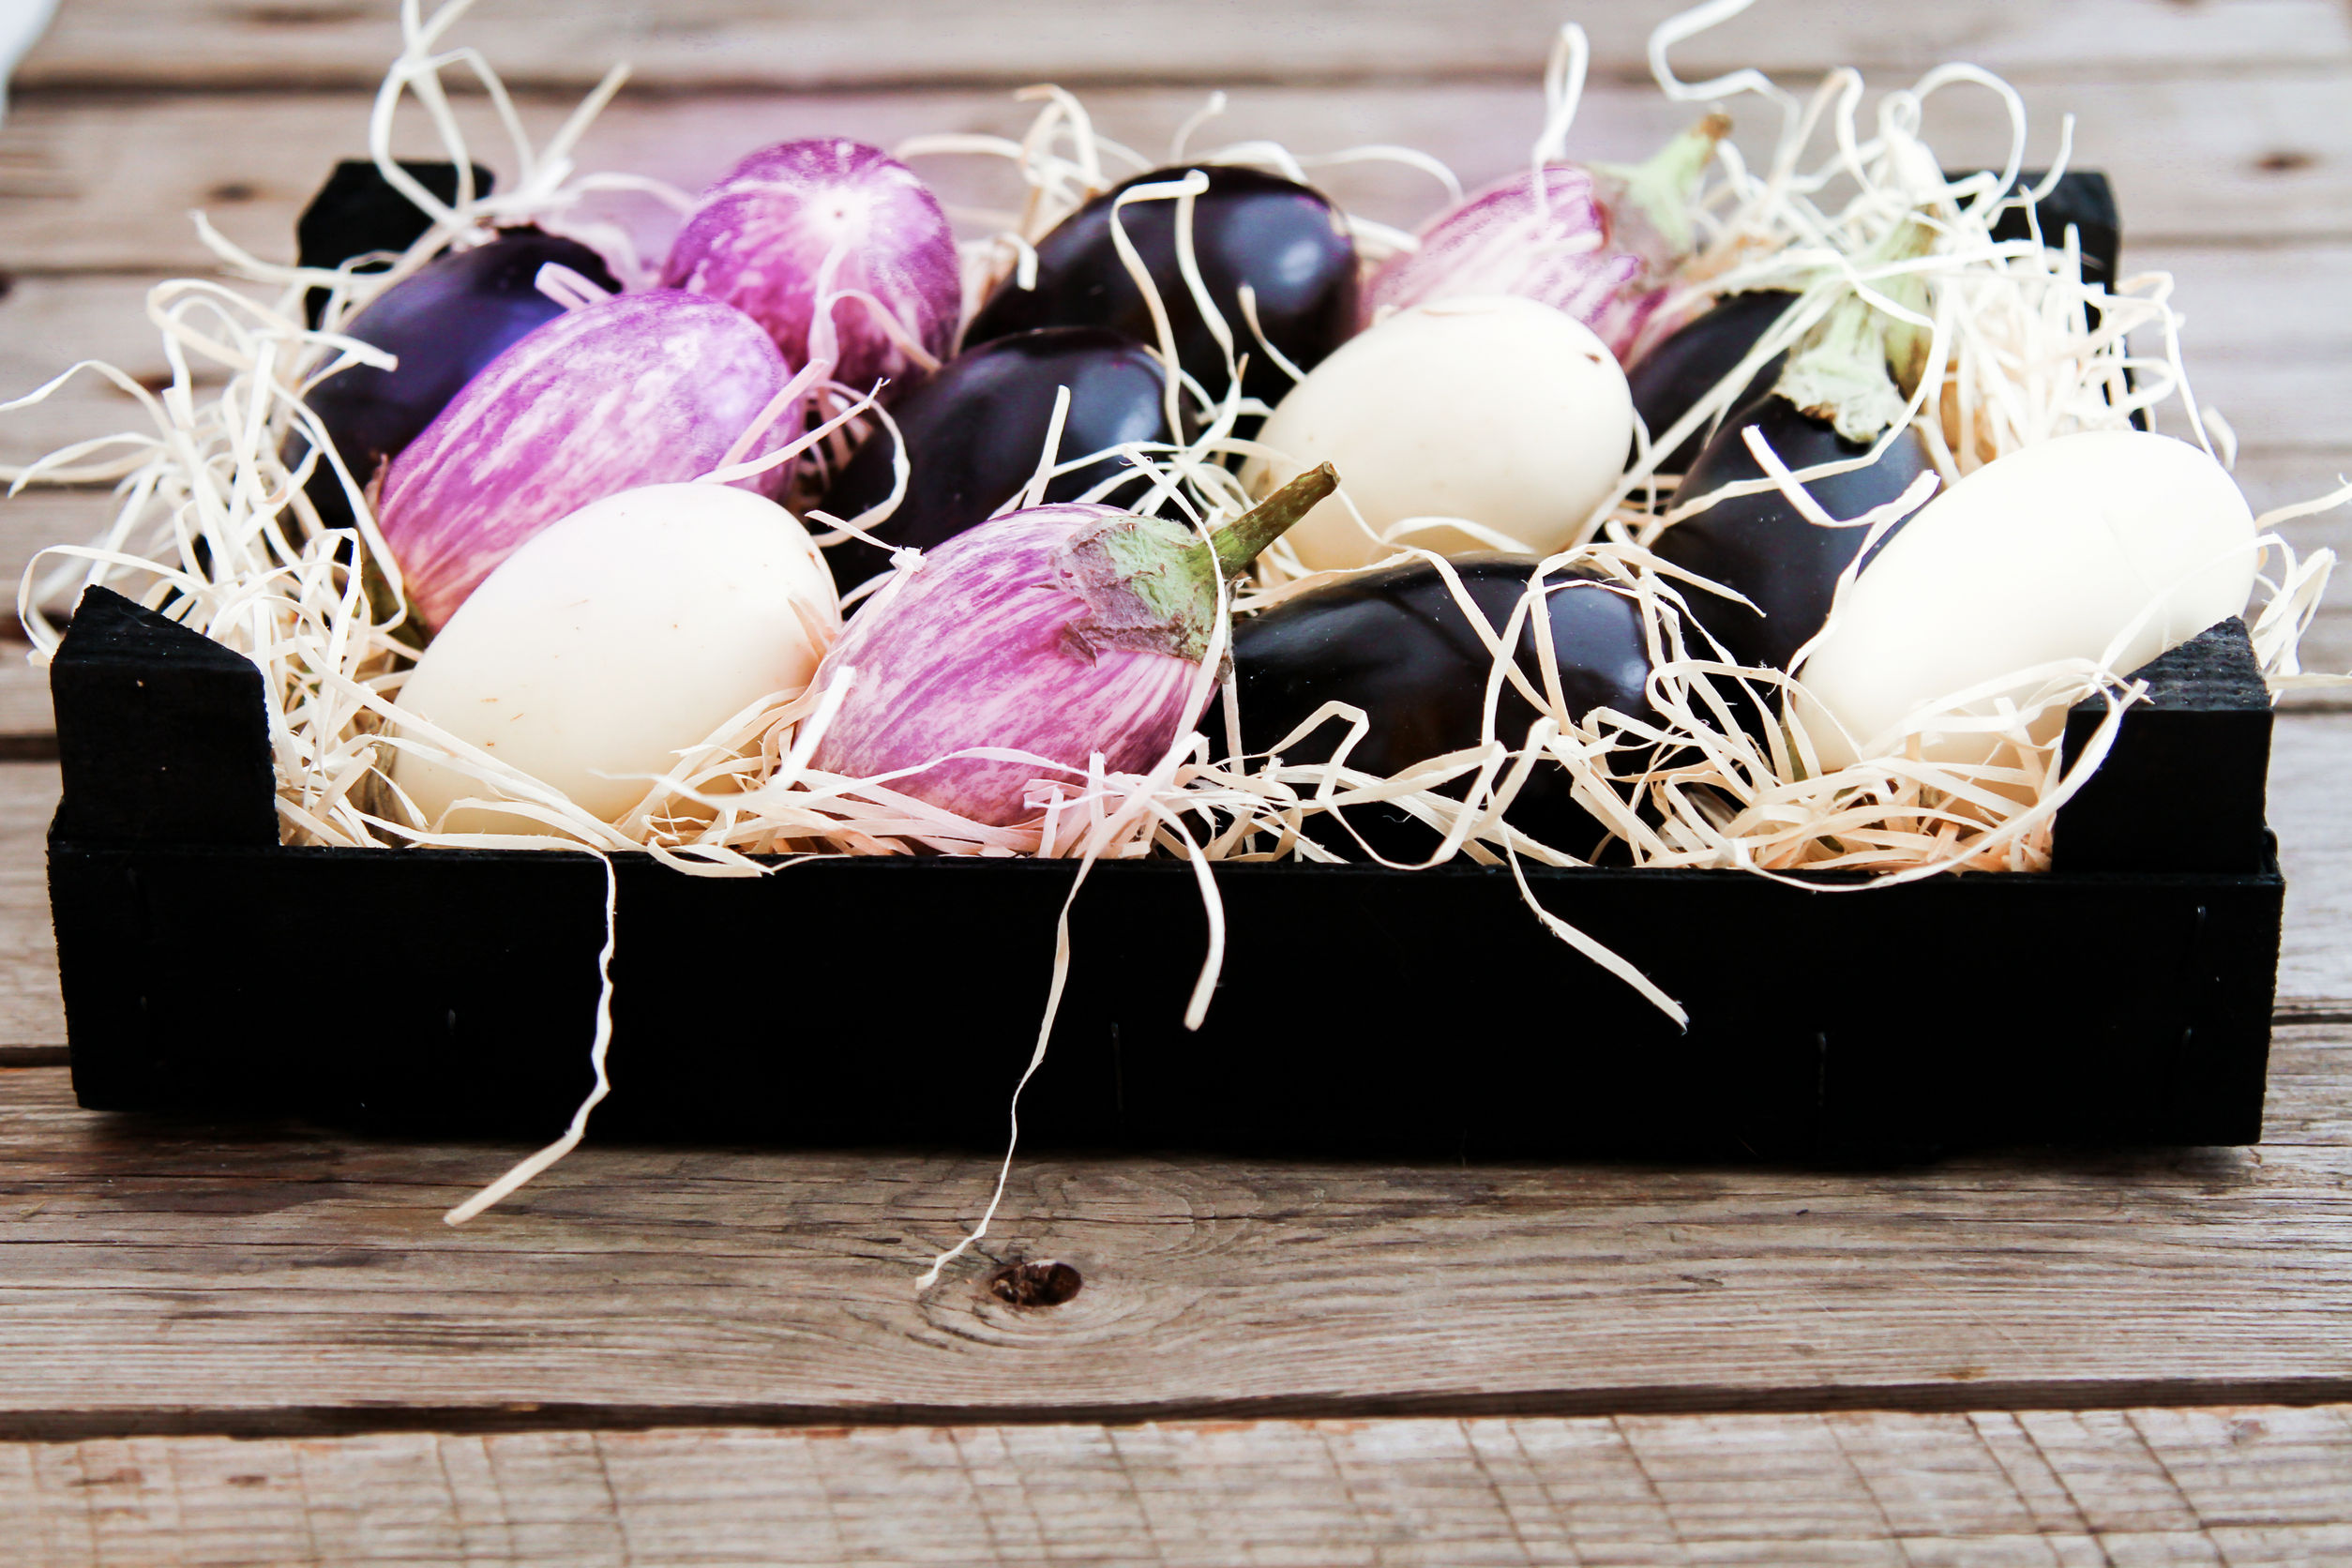 58177772 - fresh eggplants of different color on dark wooden background.